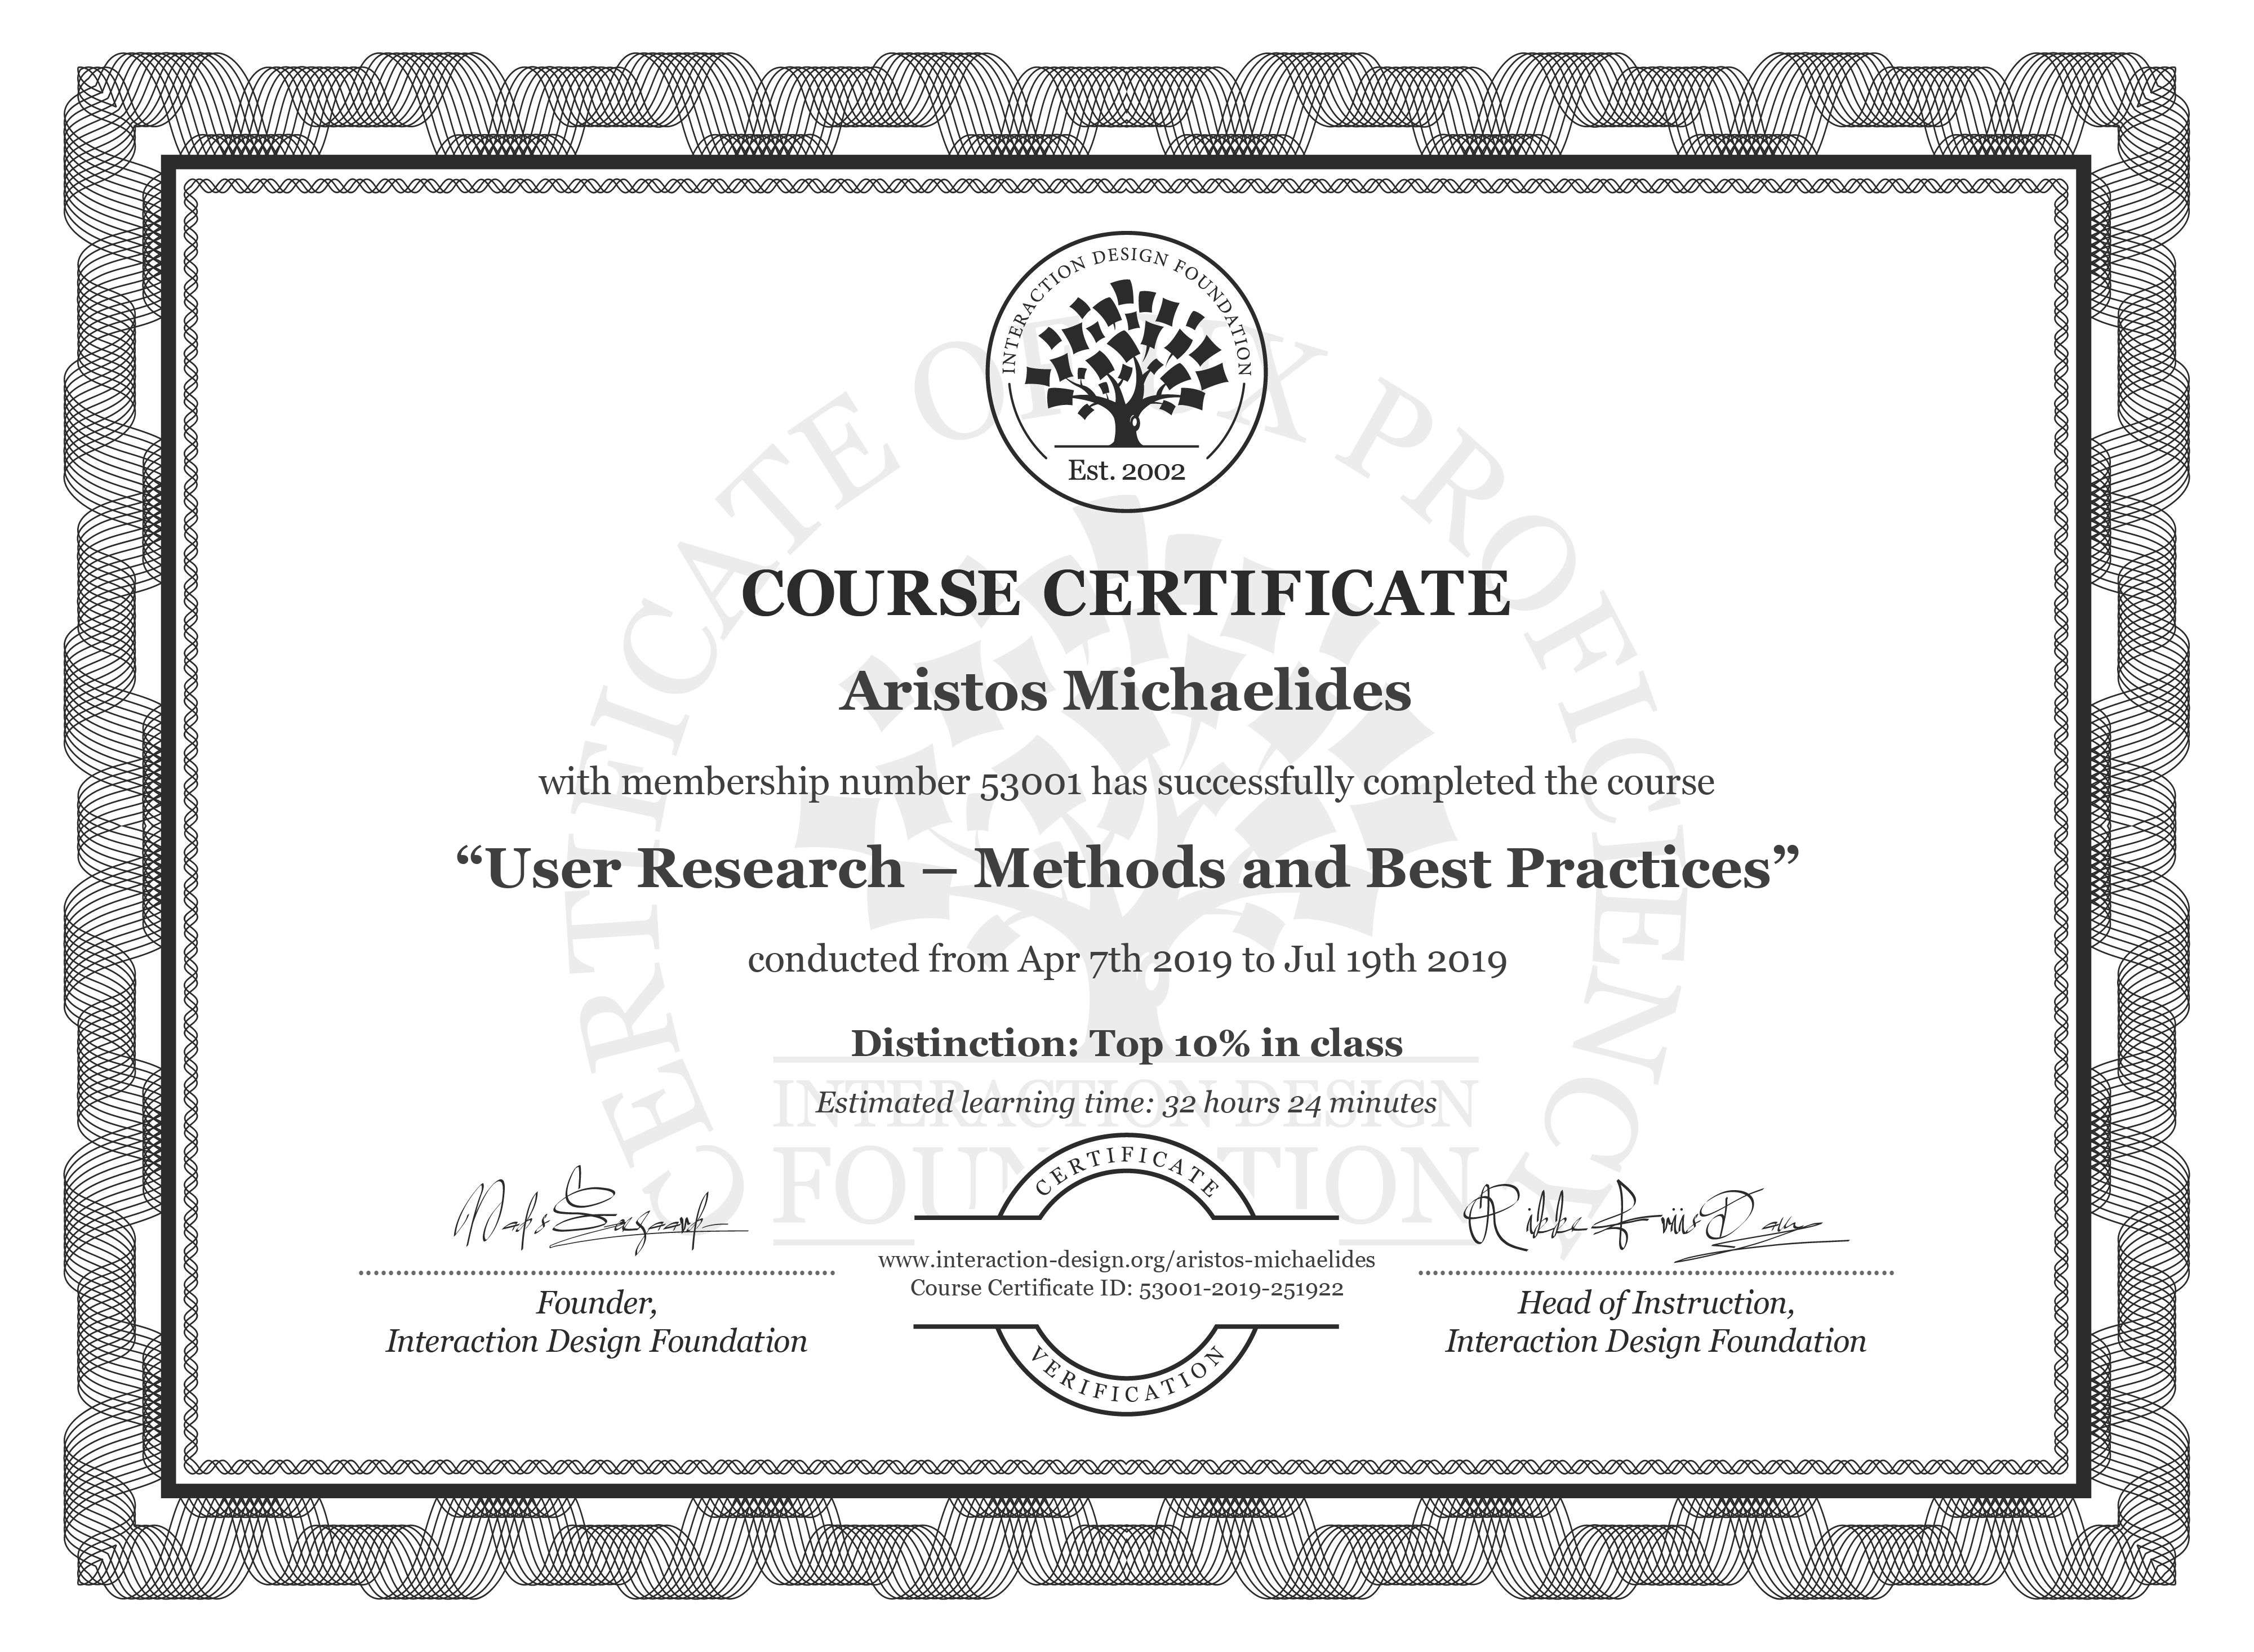 Aristos Michaelides's Course Certificate: User Research – Methods and Best Practices